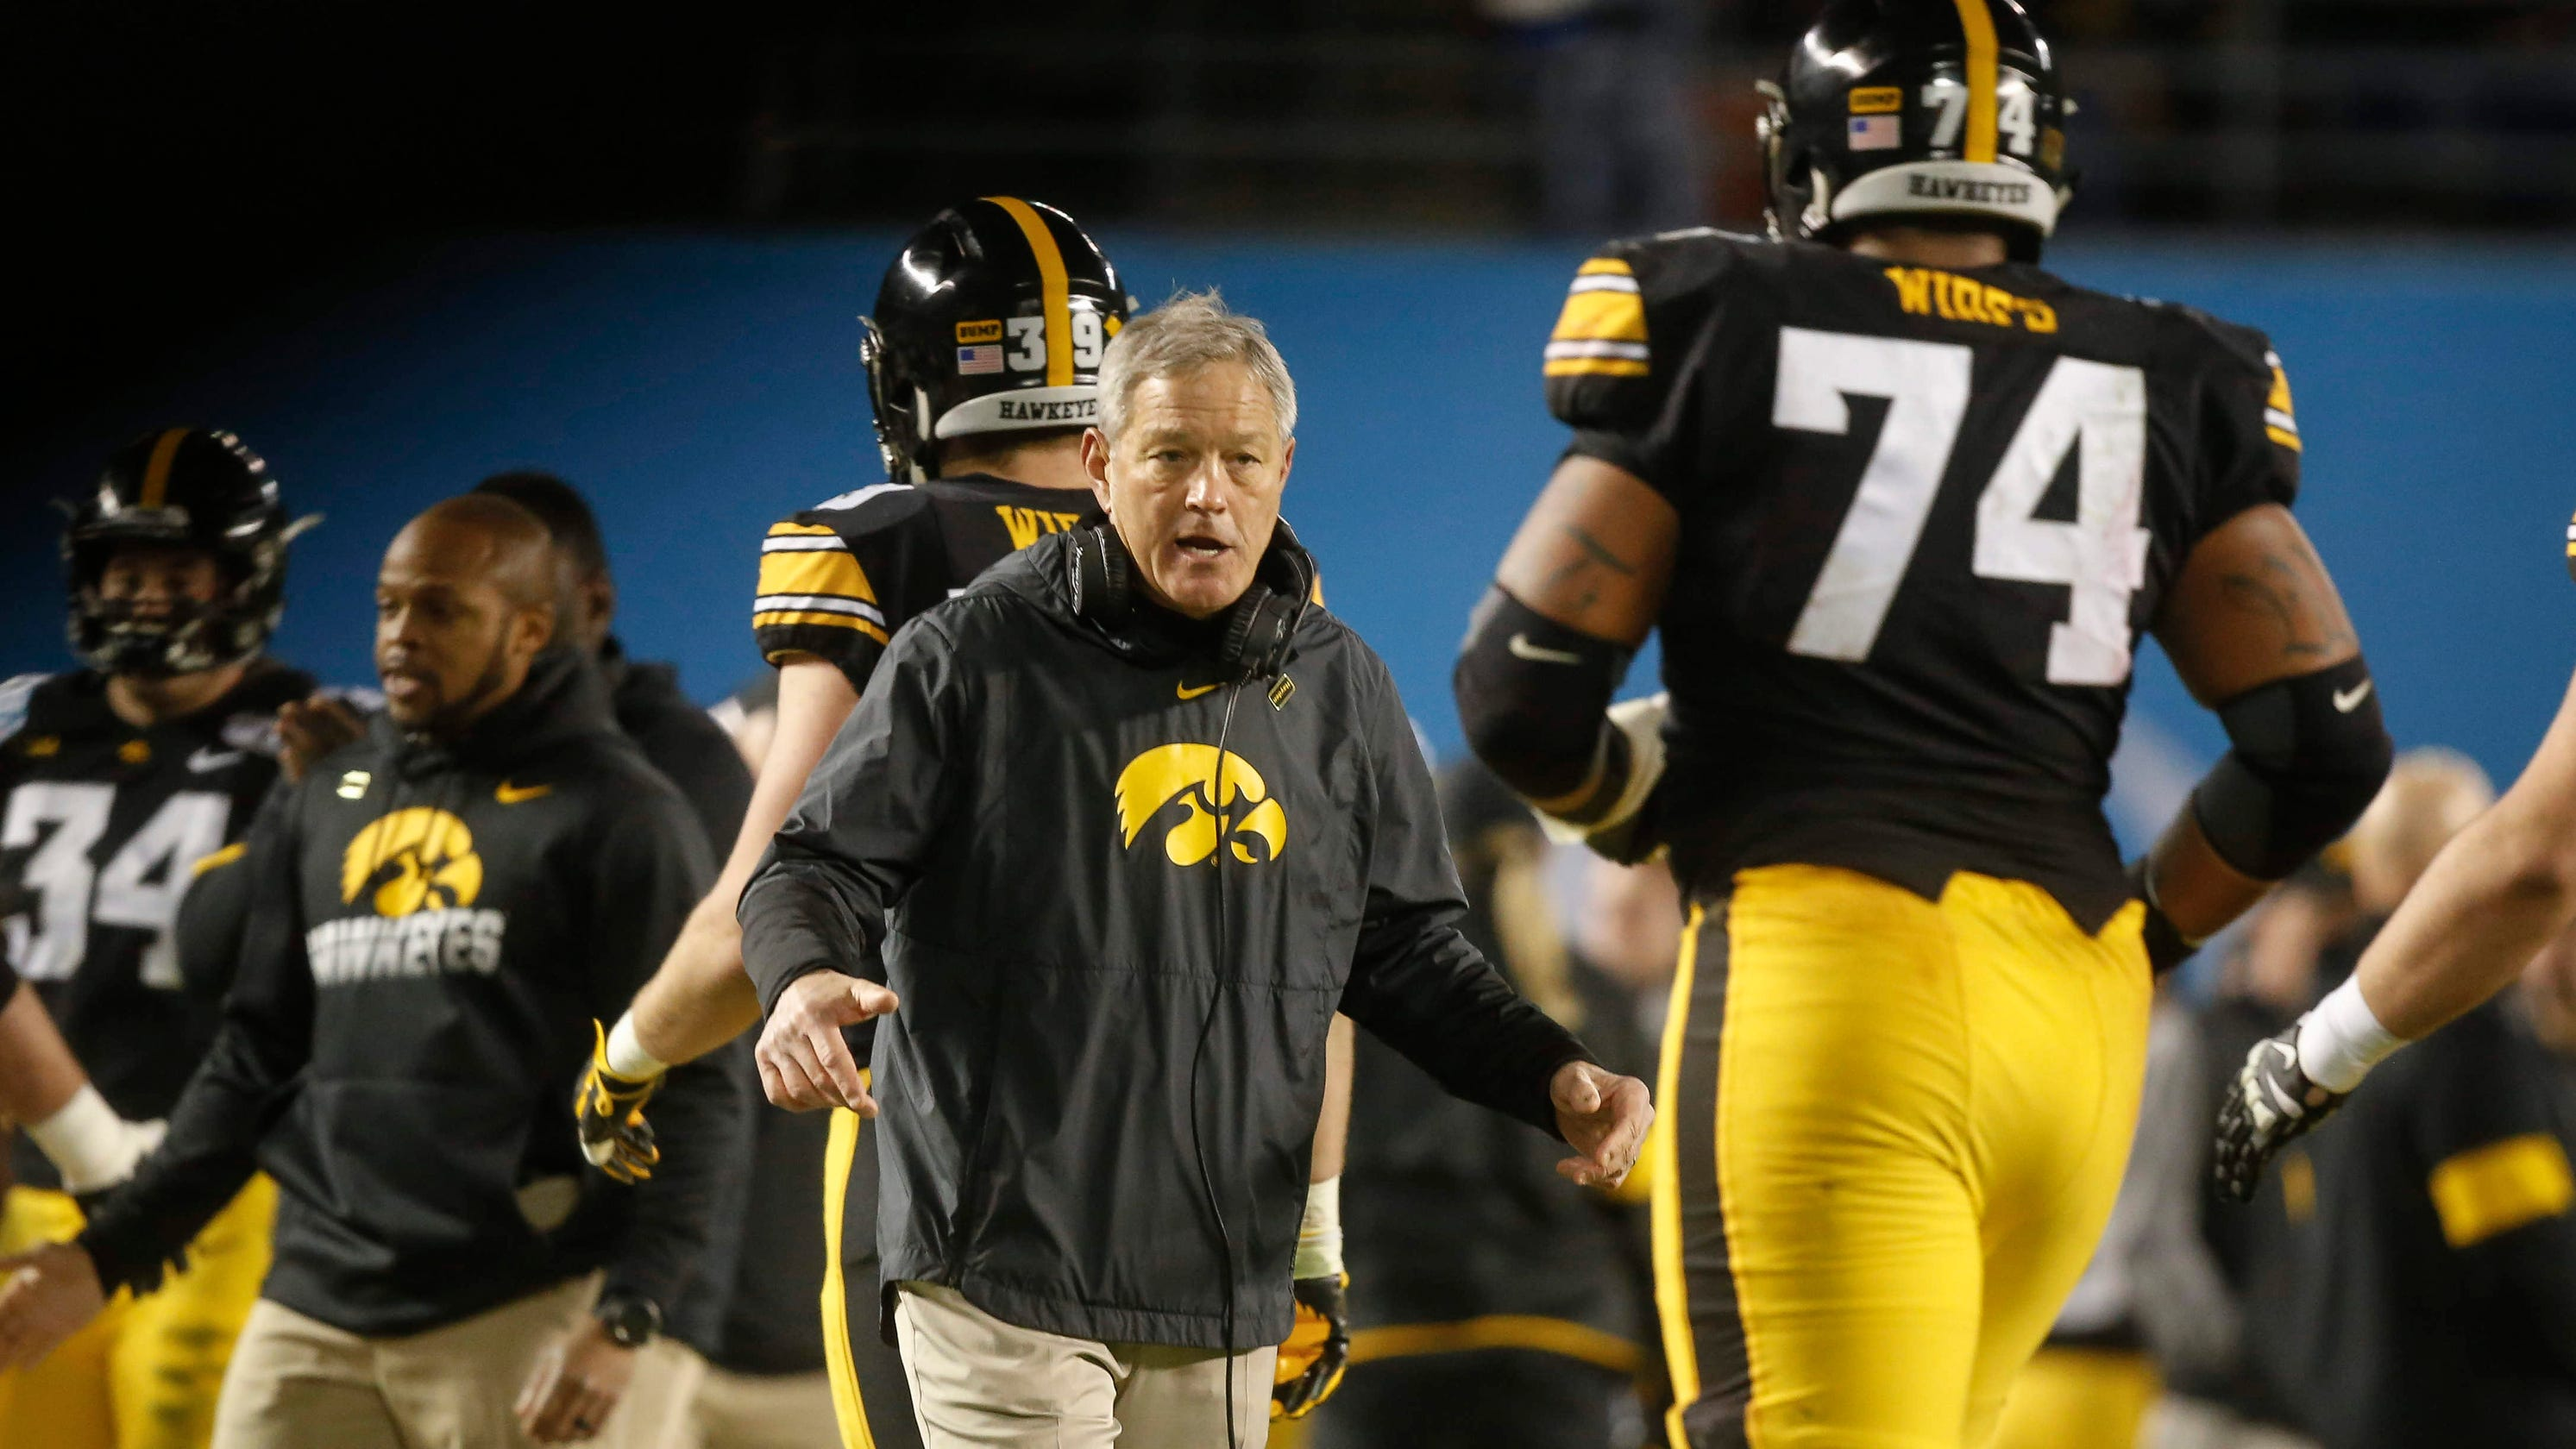 Iowa football review details racial bias, support for Kirk Ferentz